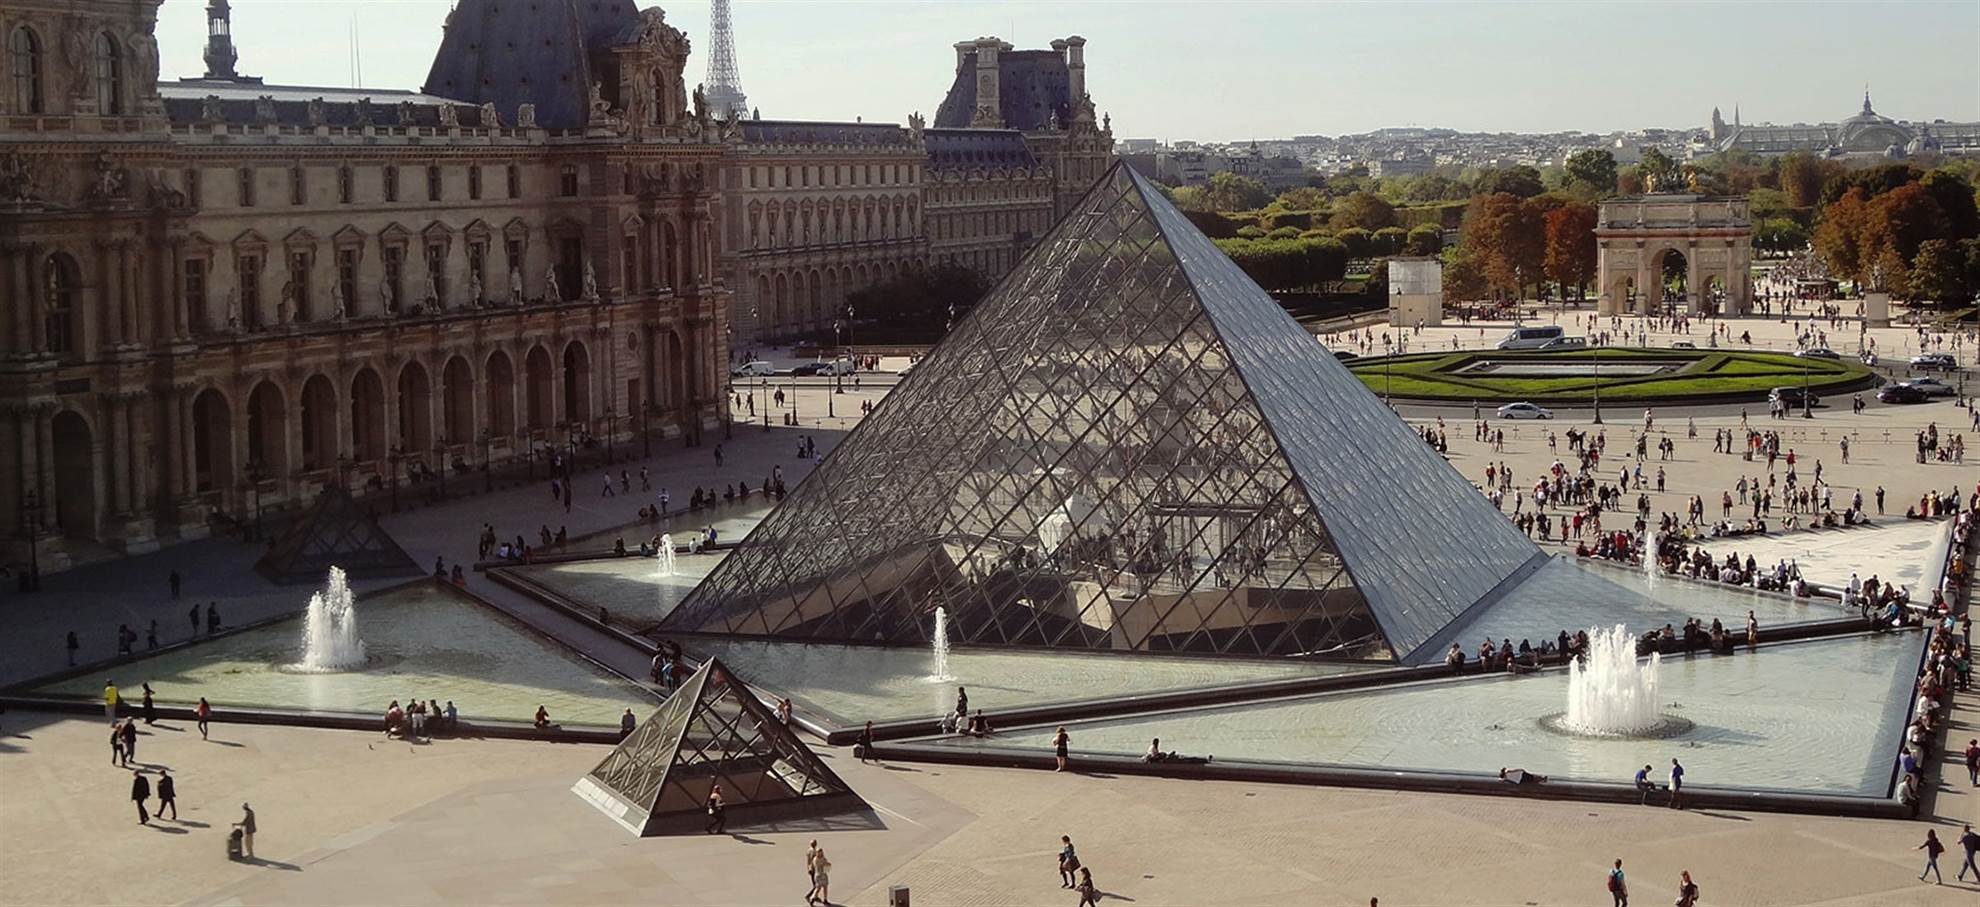 Louvre walking tour - Skip the Line!